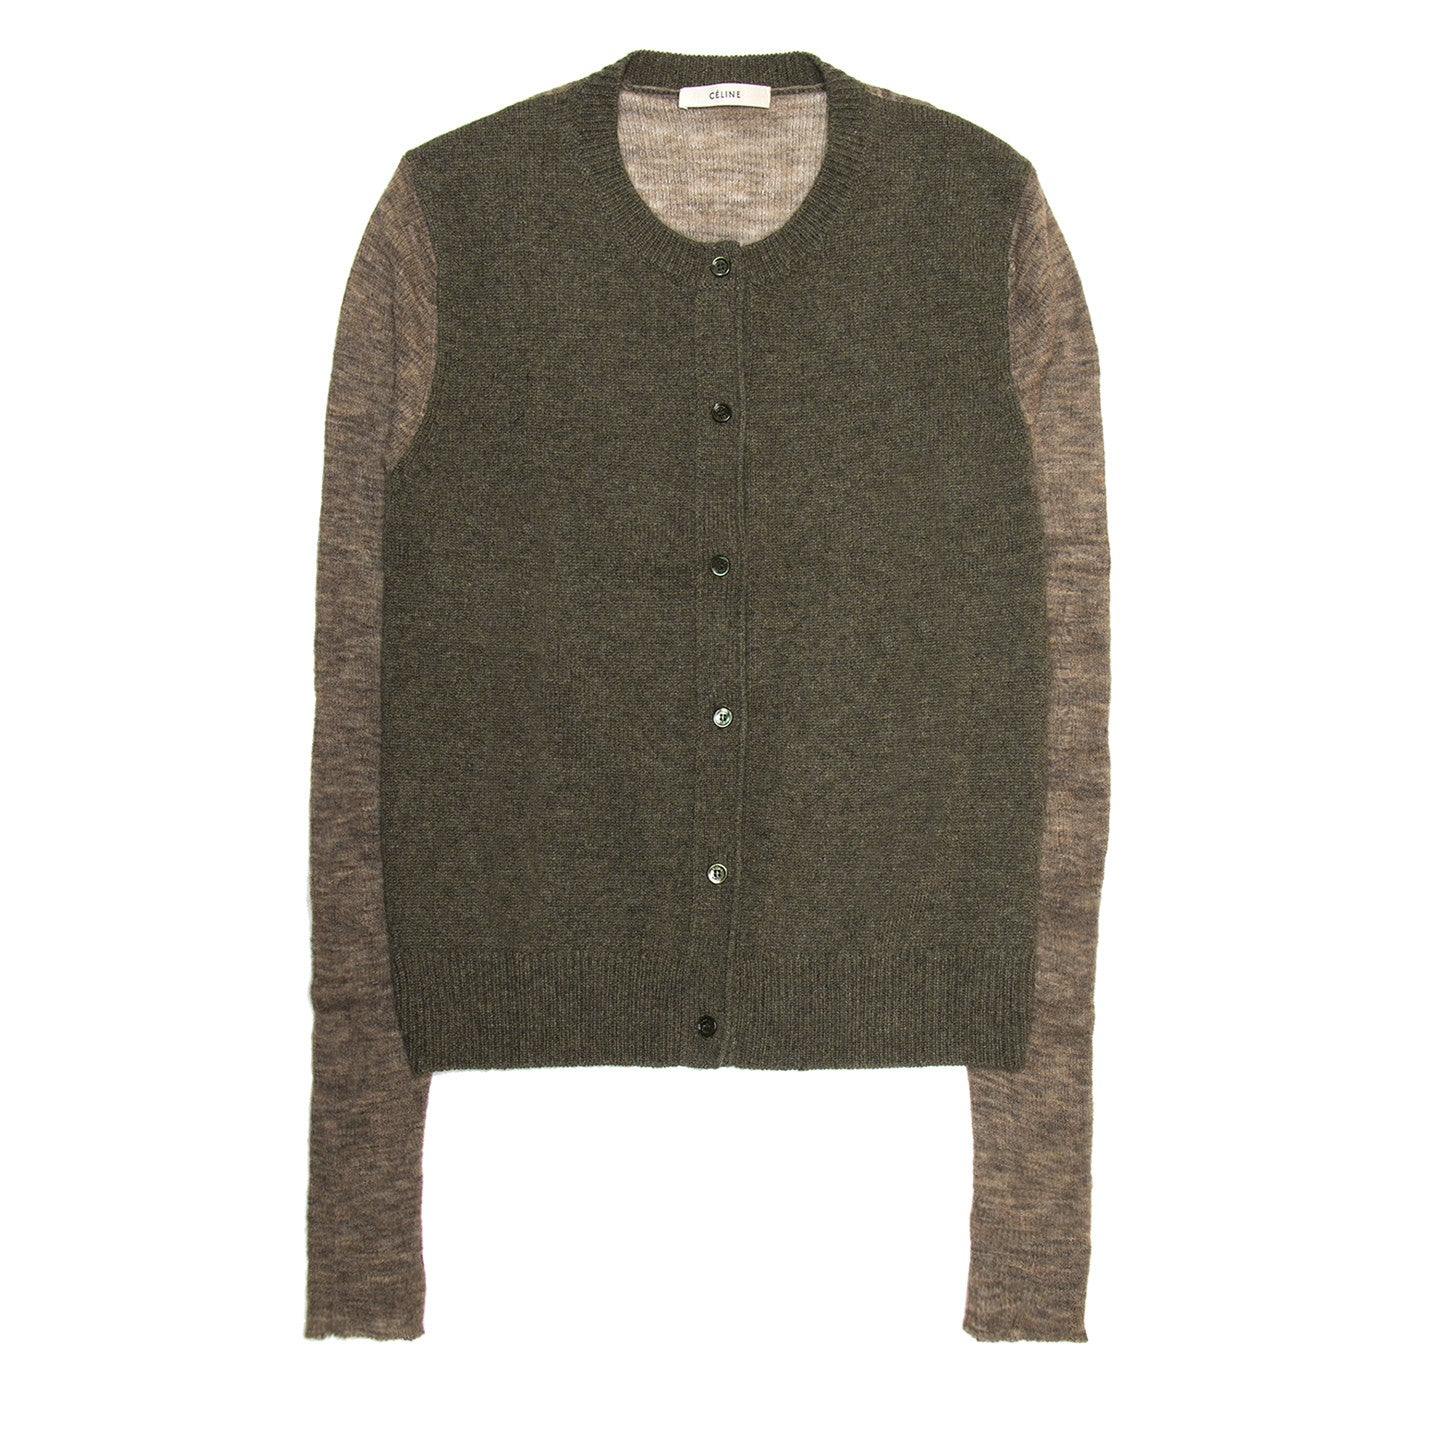 Find an authentic preowned Celine Green & Brown Cashmere Cardigan, size L at BunnyJack, where a portion of every sale goes to charity.